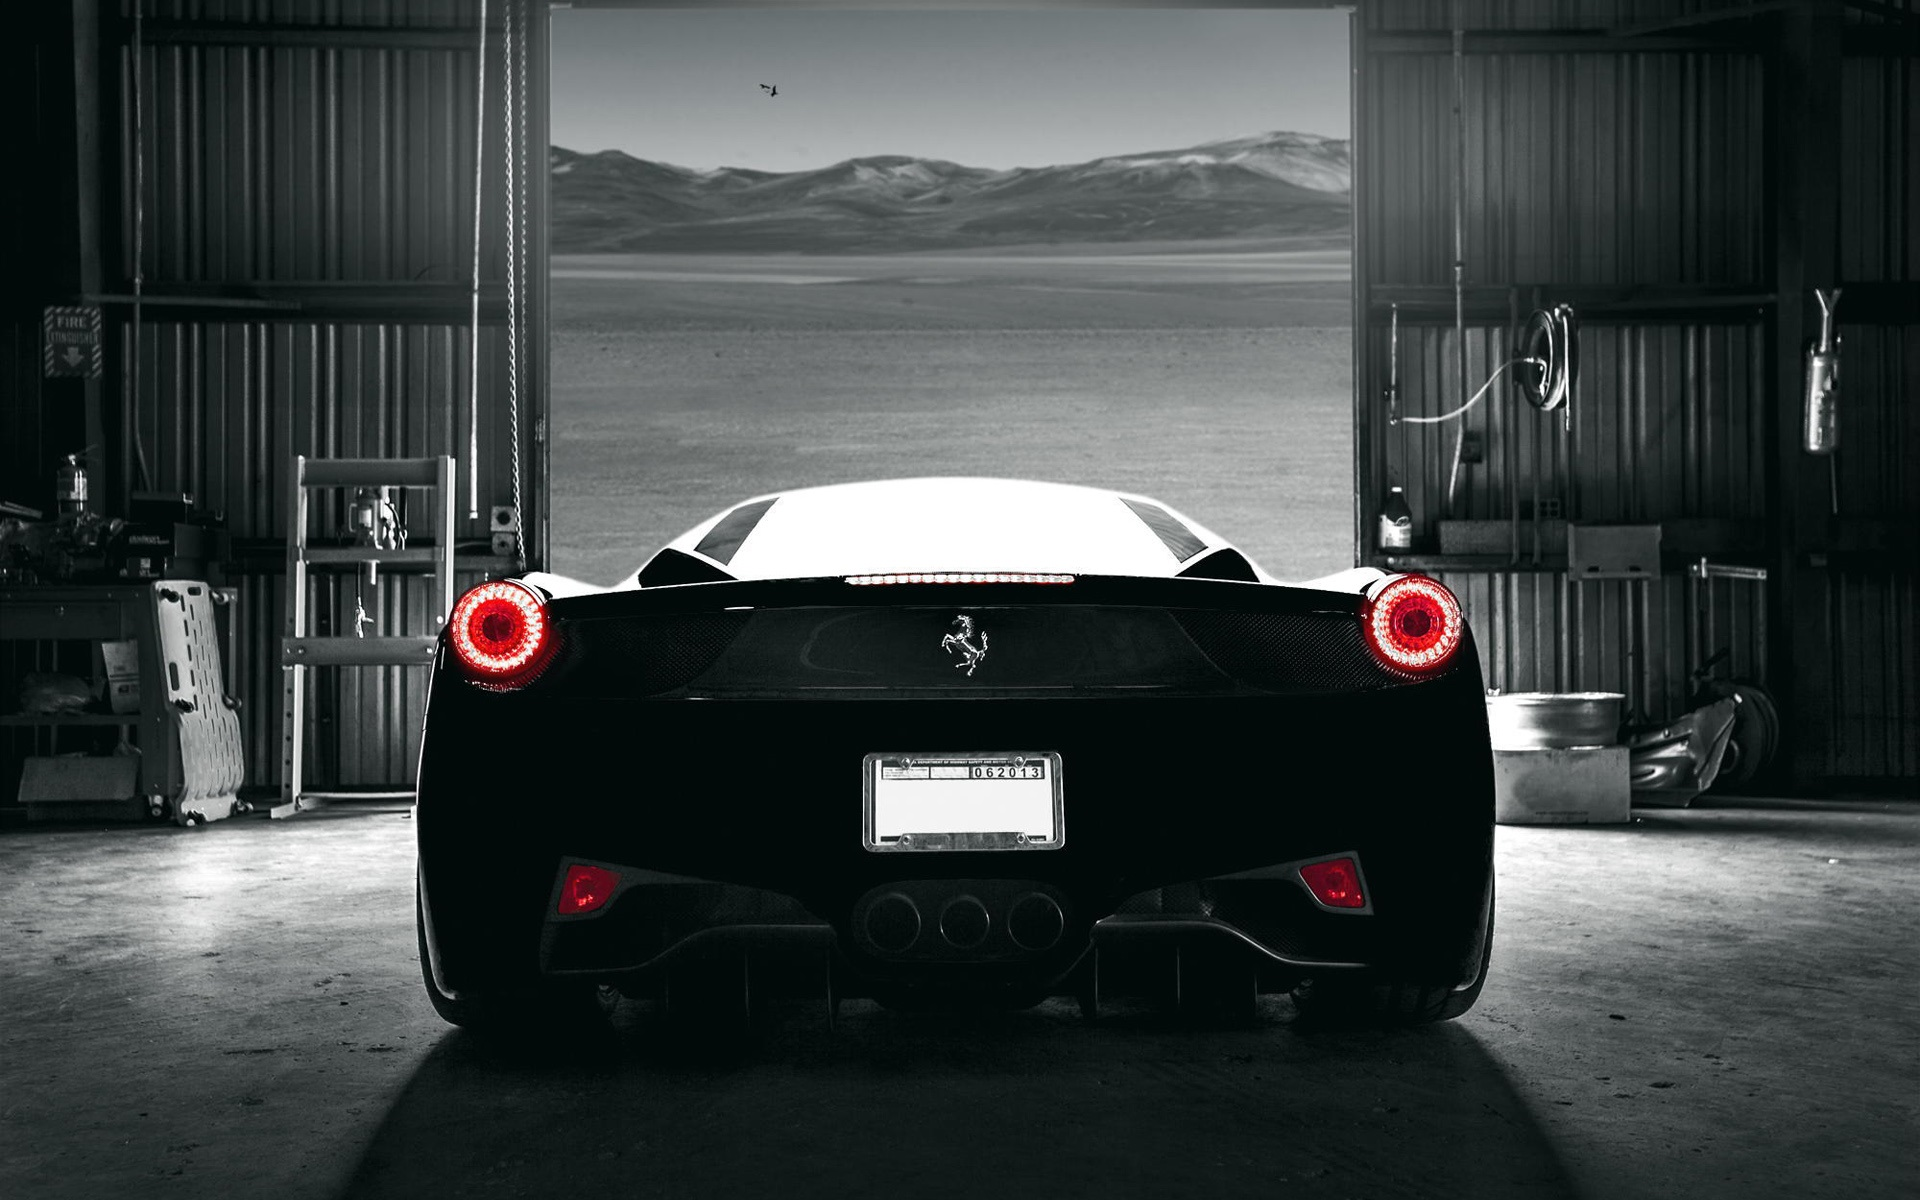 Cute Anime Pictures Wallpapers Ferrari 458 Italia Wallpapers Archives Page 6 Of 6 Hd